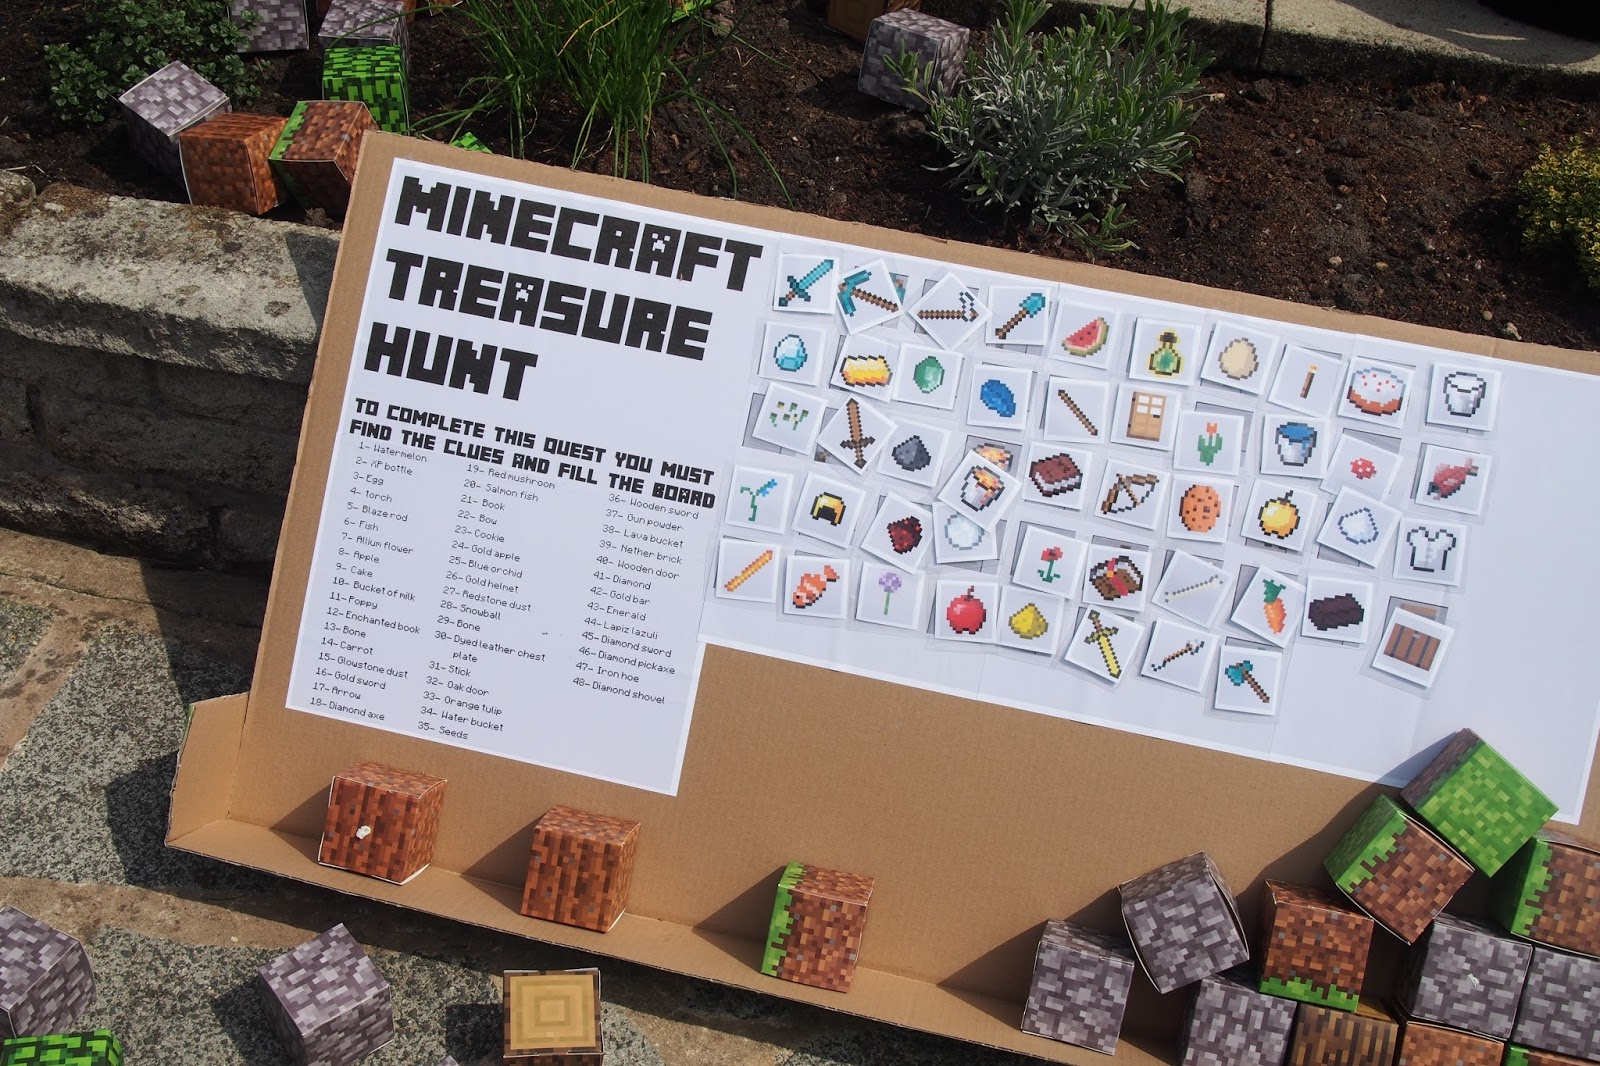 Minecraft Treasure Hunt